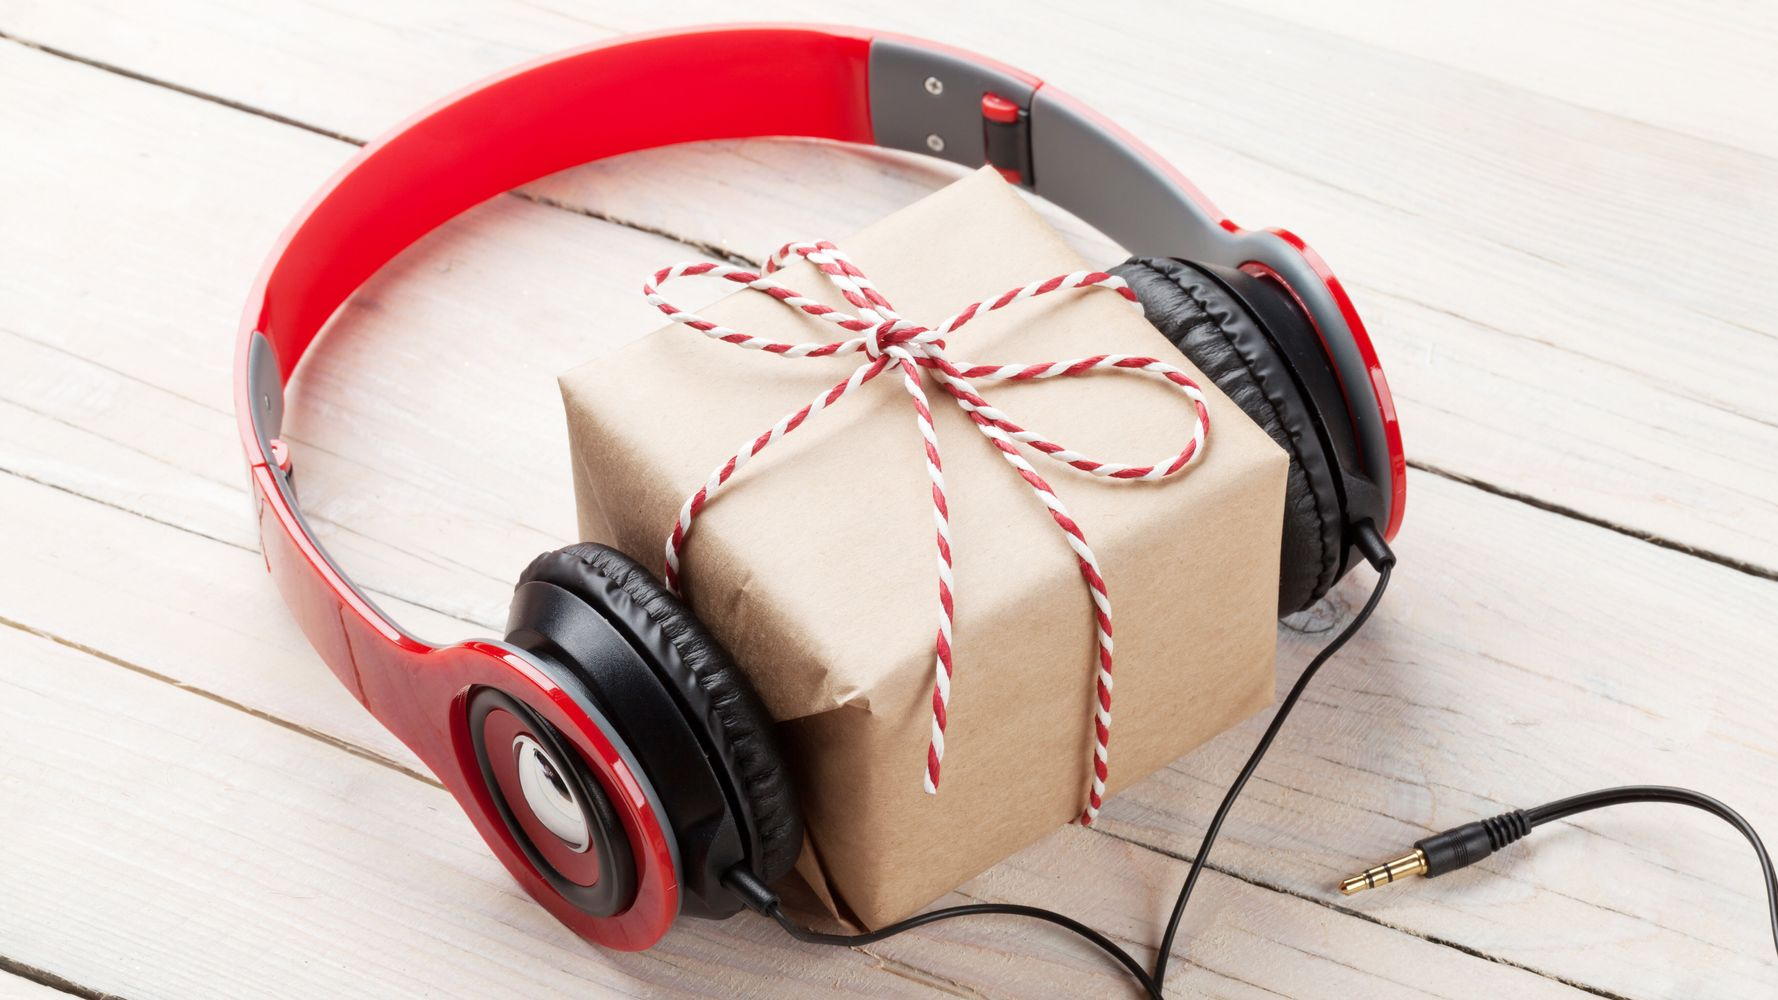 The Coolest Tech Gifts Under $50